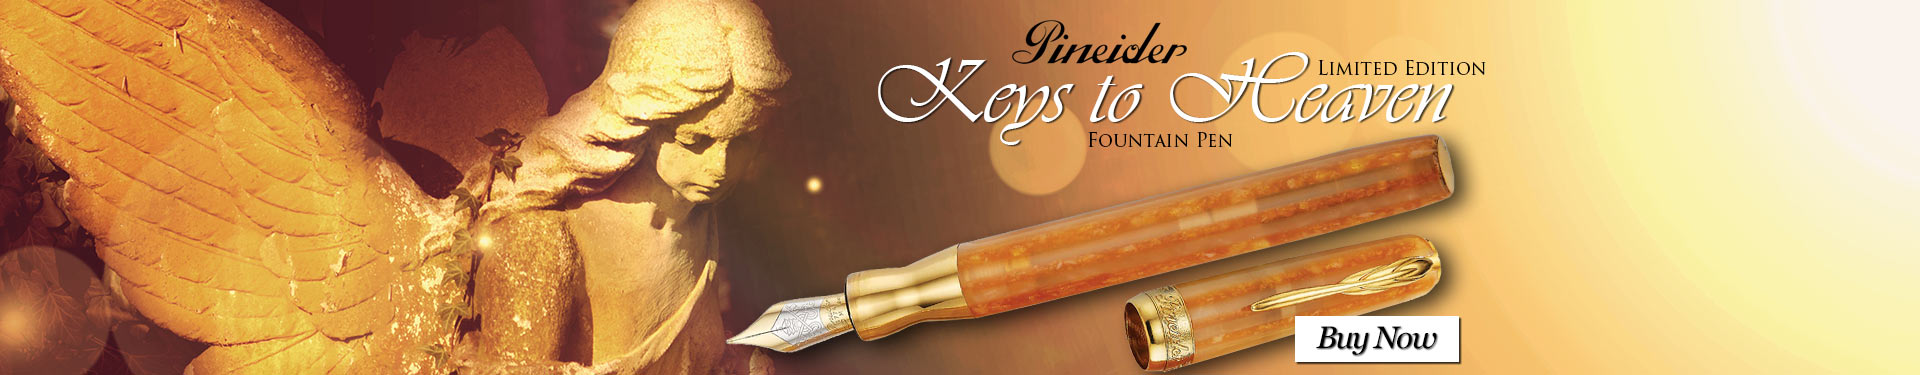 Pineider Limited Edition Keys to Heaven Fountain Pen